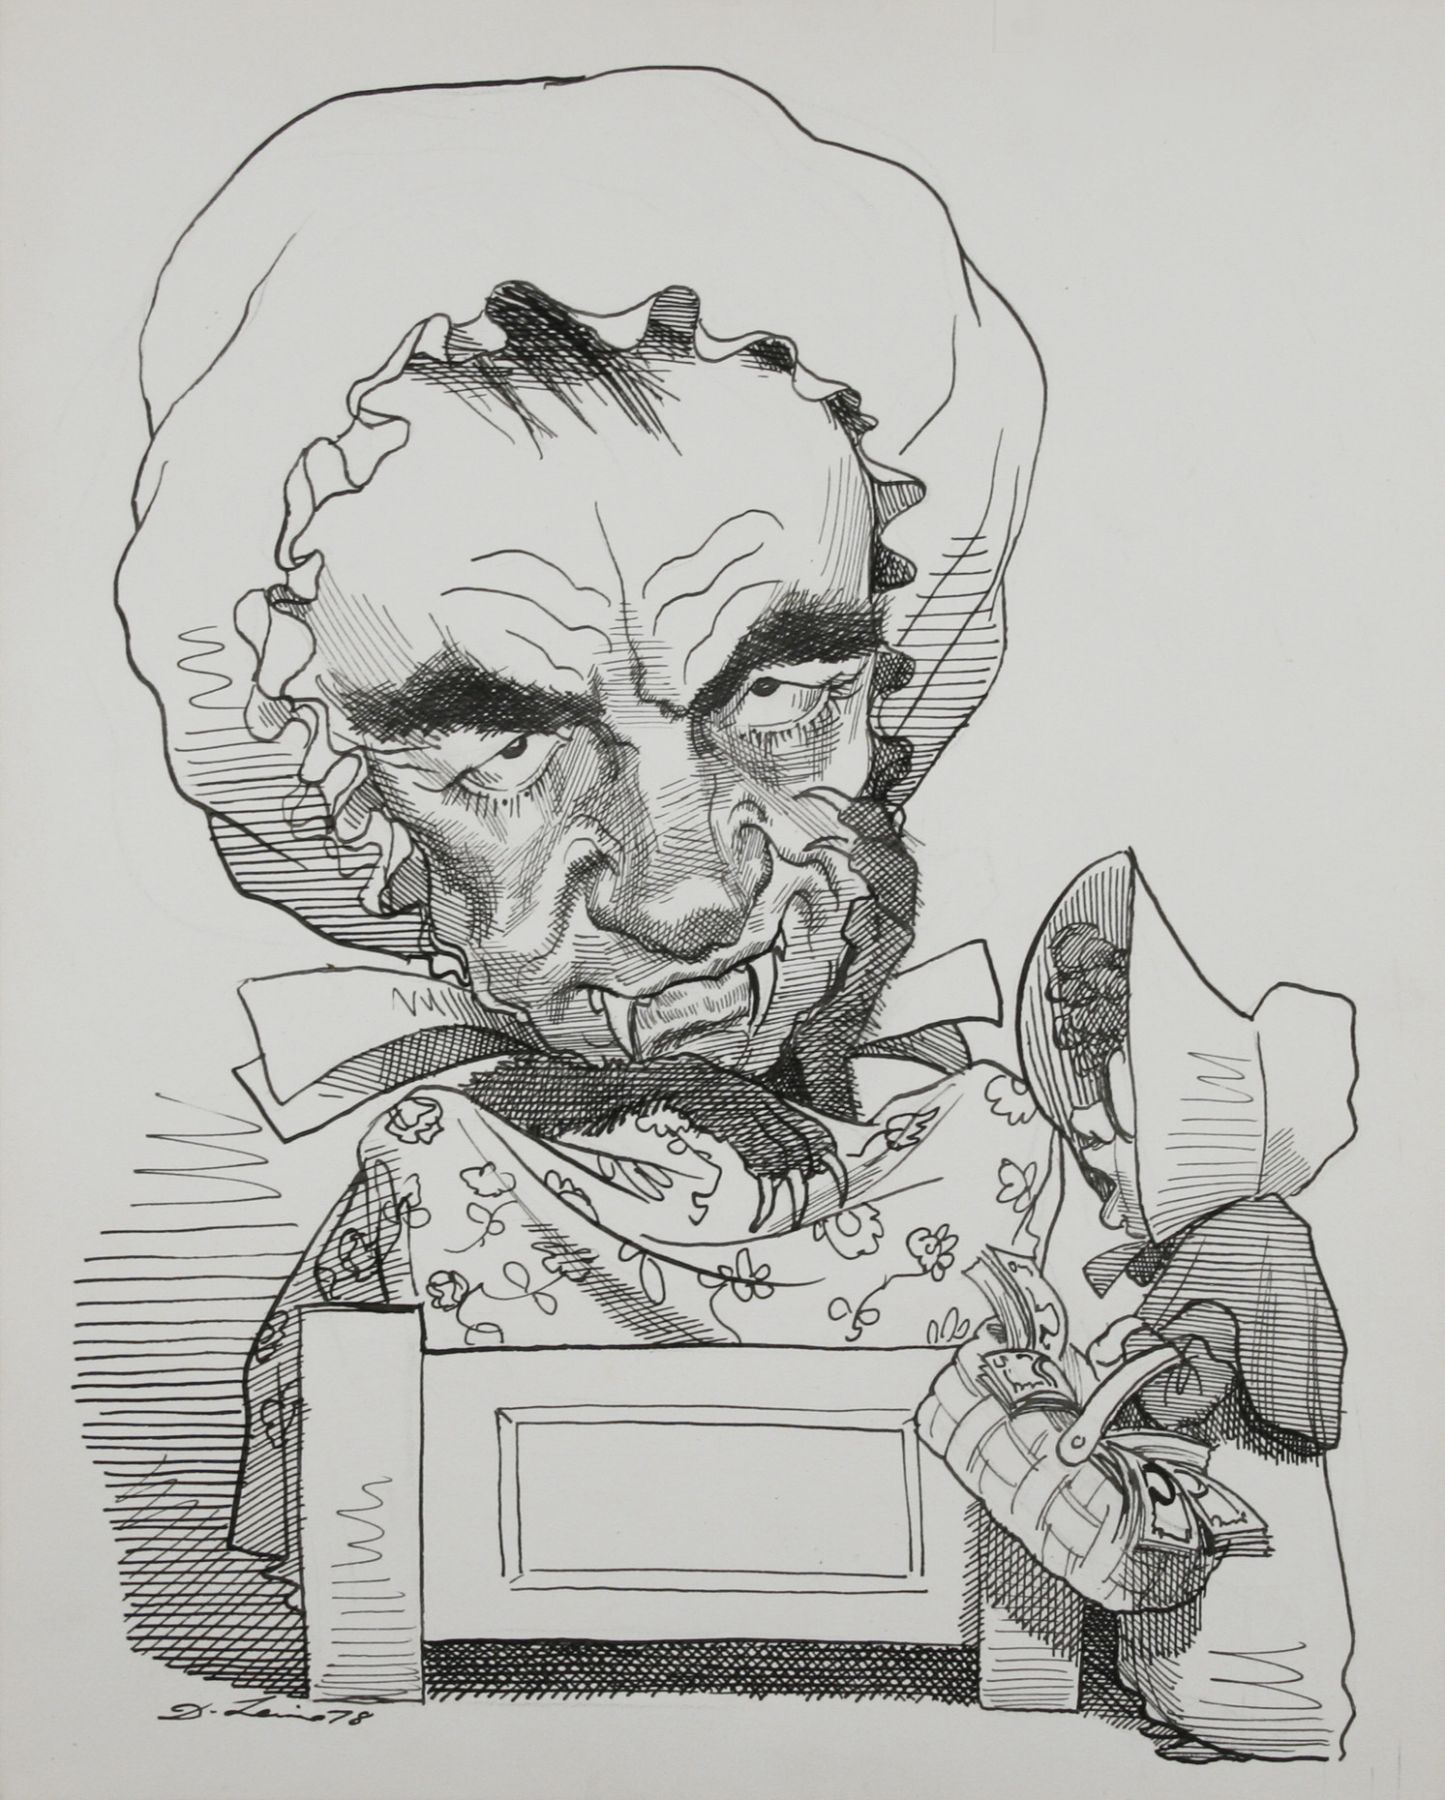 David Levine, Murdoch (SOLD), 1978, ink on paper, 13 3/4 x 11 inches